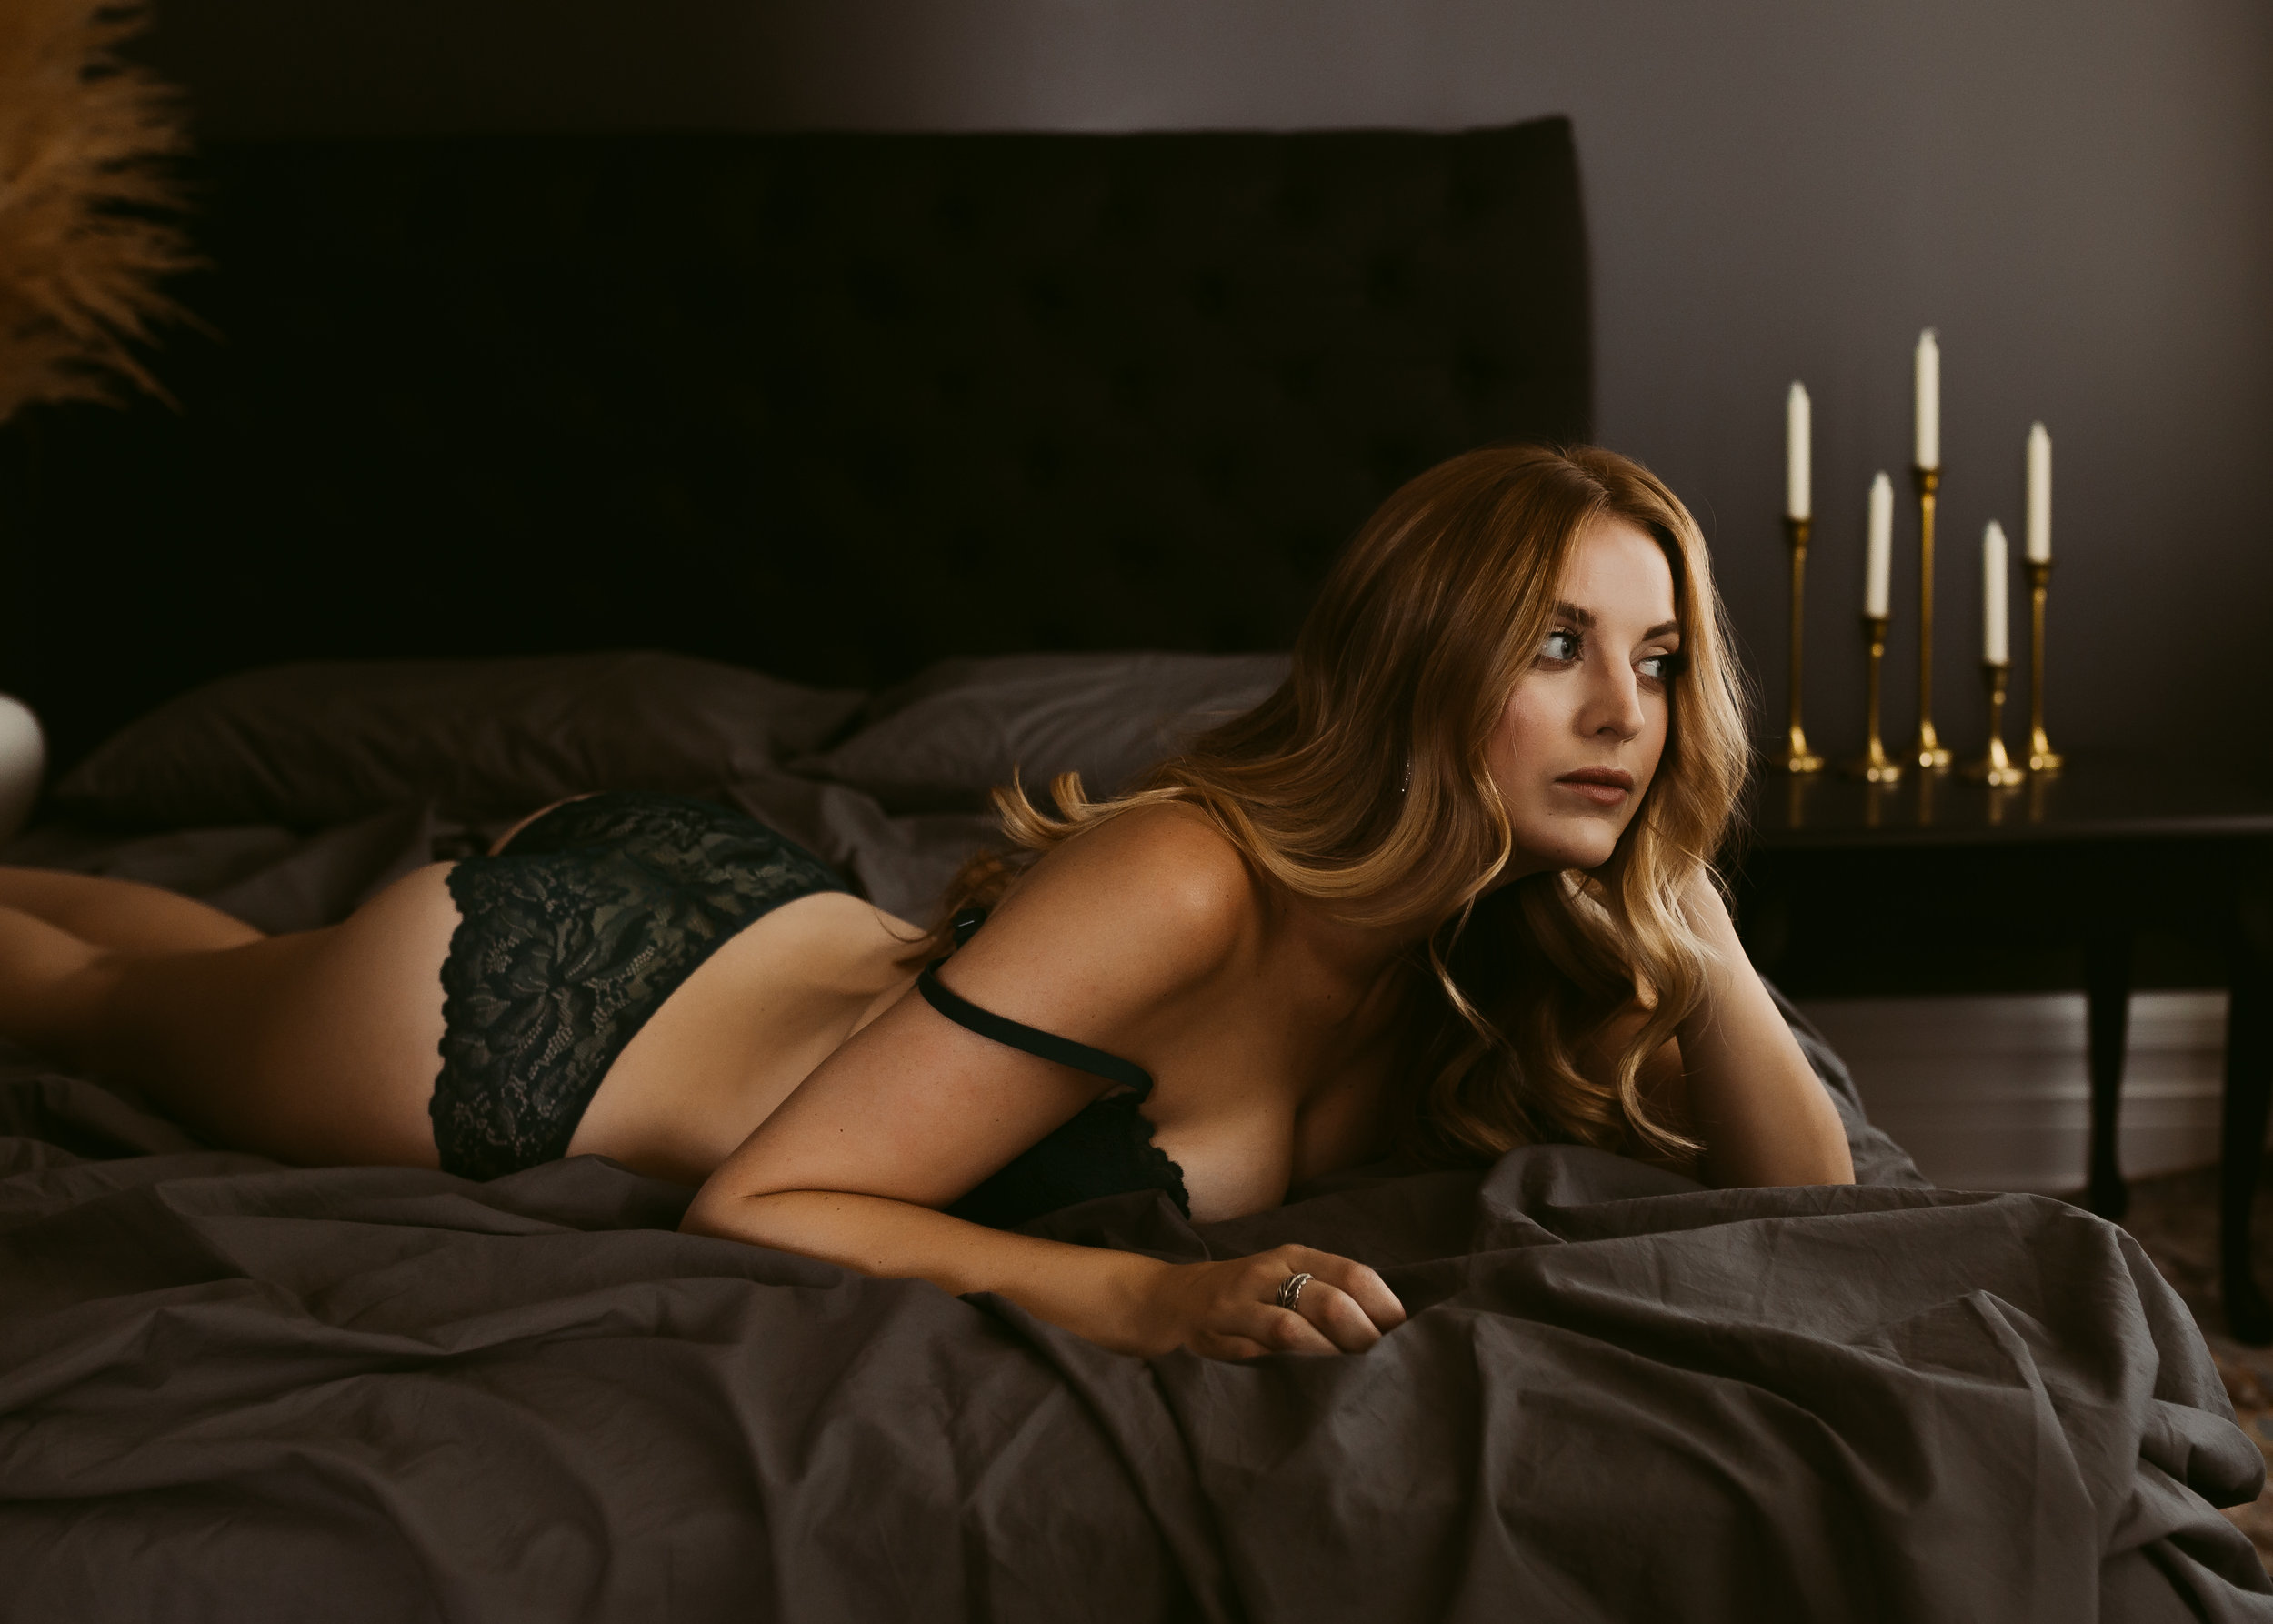 Michigan_Boudoir_Photographer_Butterfly_Boudoir_87.JPG